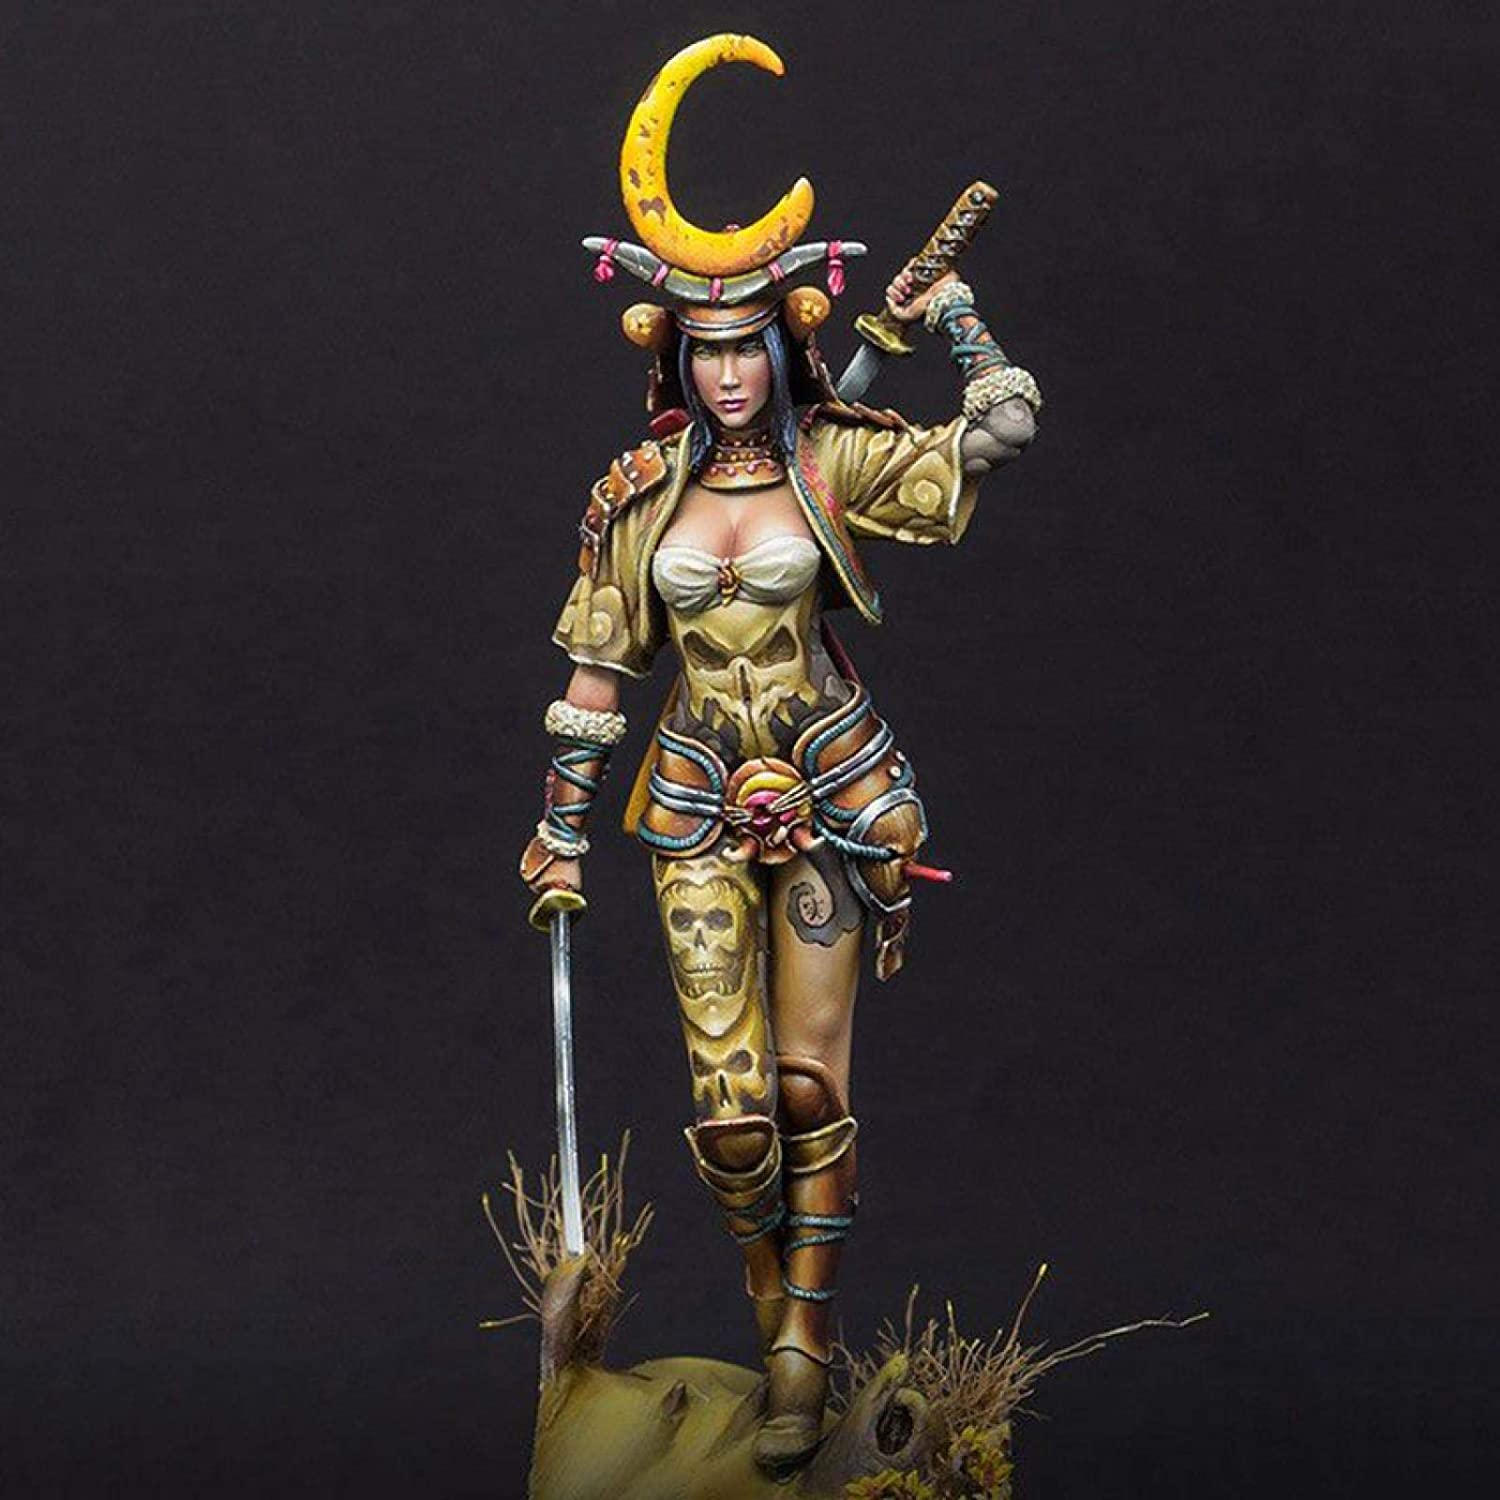 Risjc 1:24 Resin Model Character Female Stan Soldier kit Ancient Max 84% OFF El Paso Mall